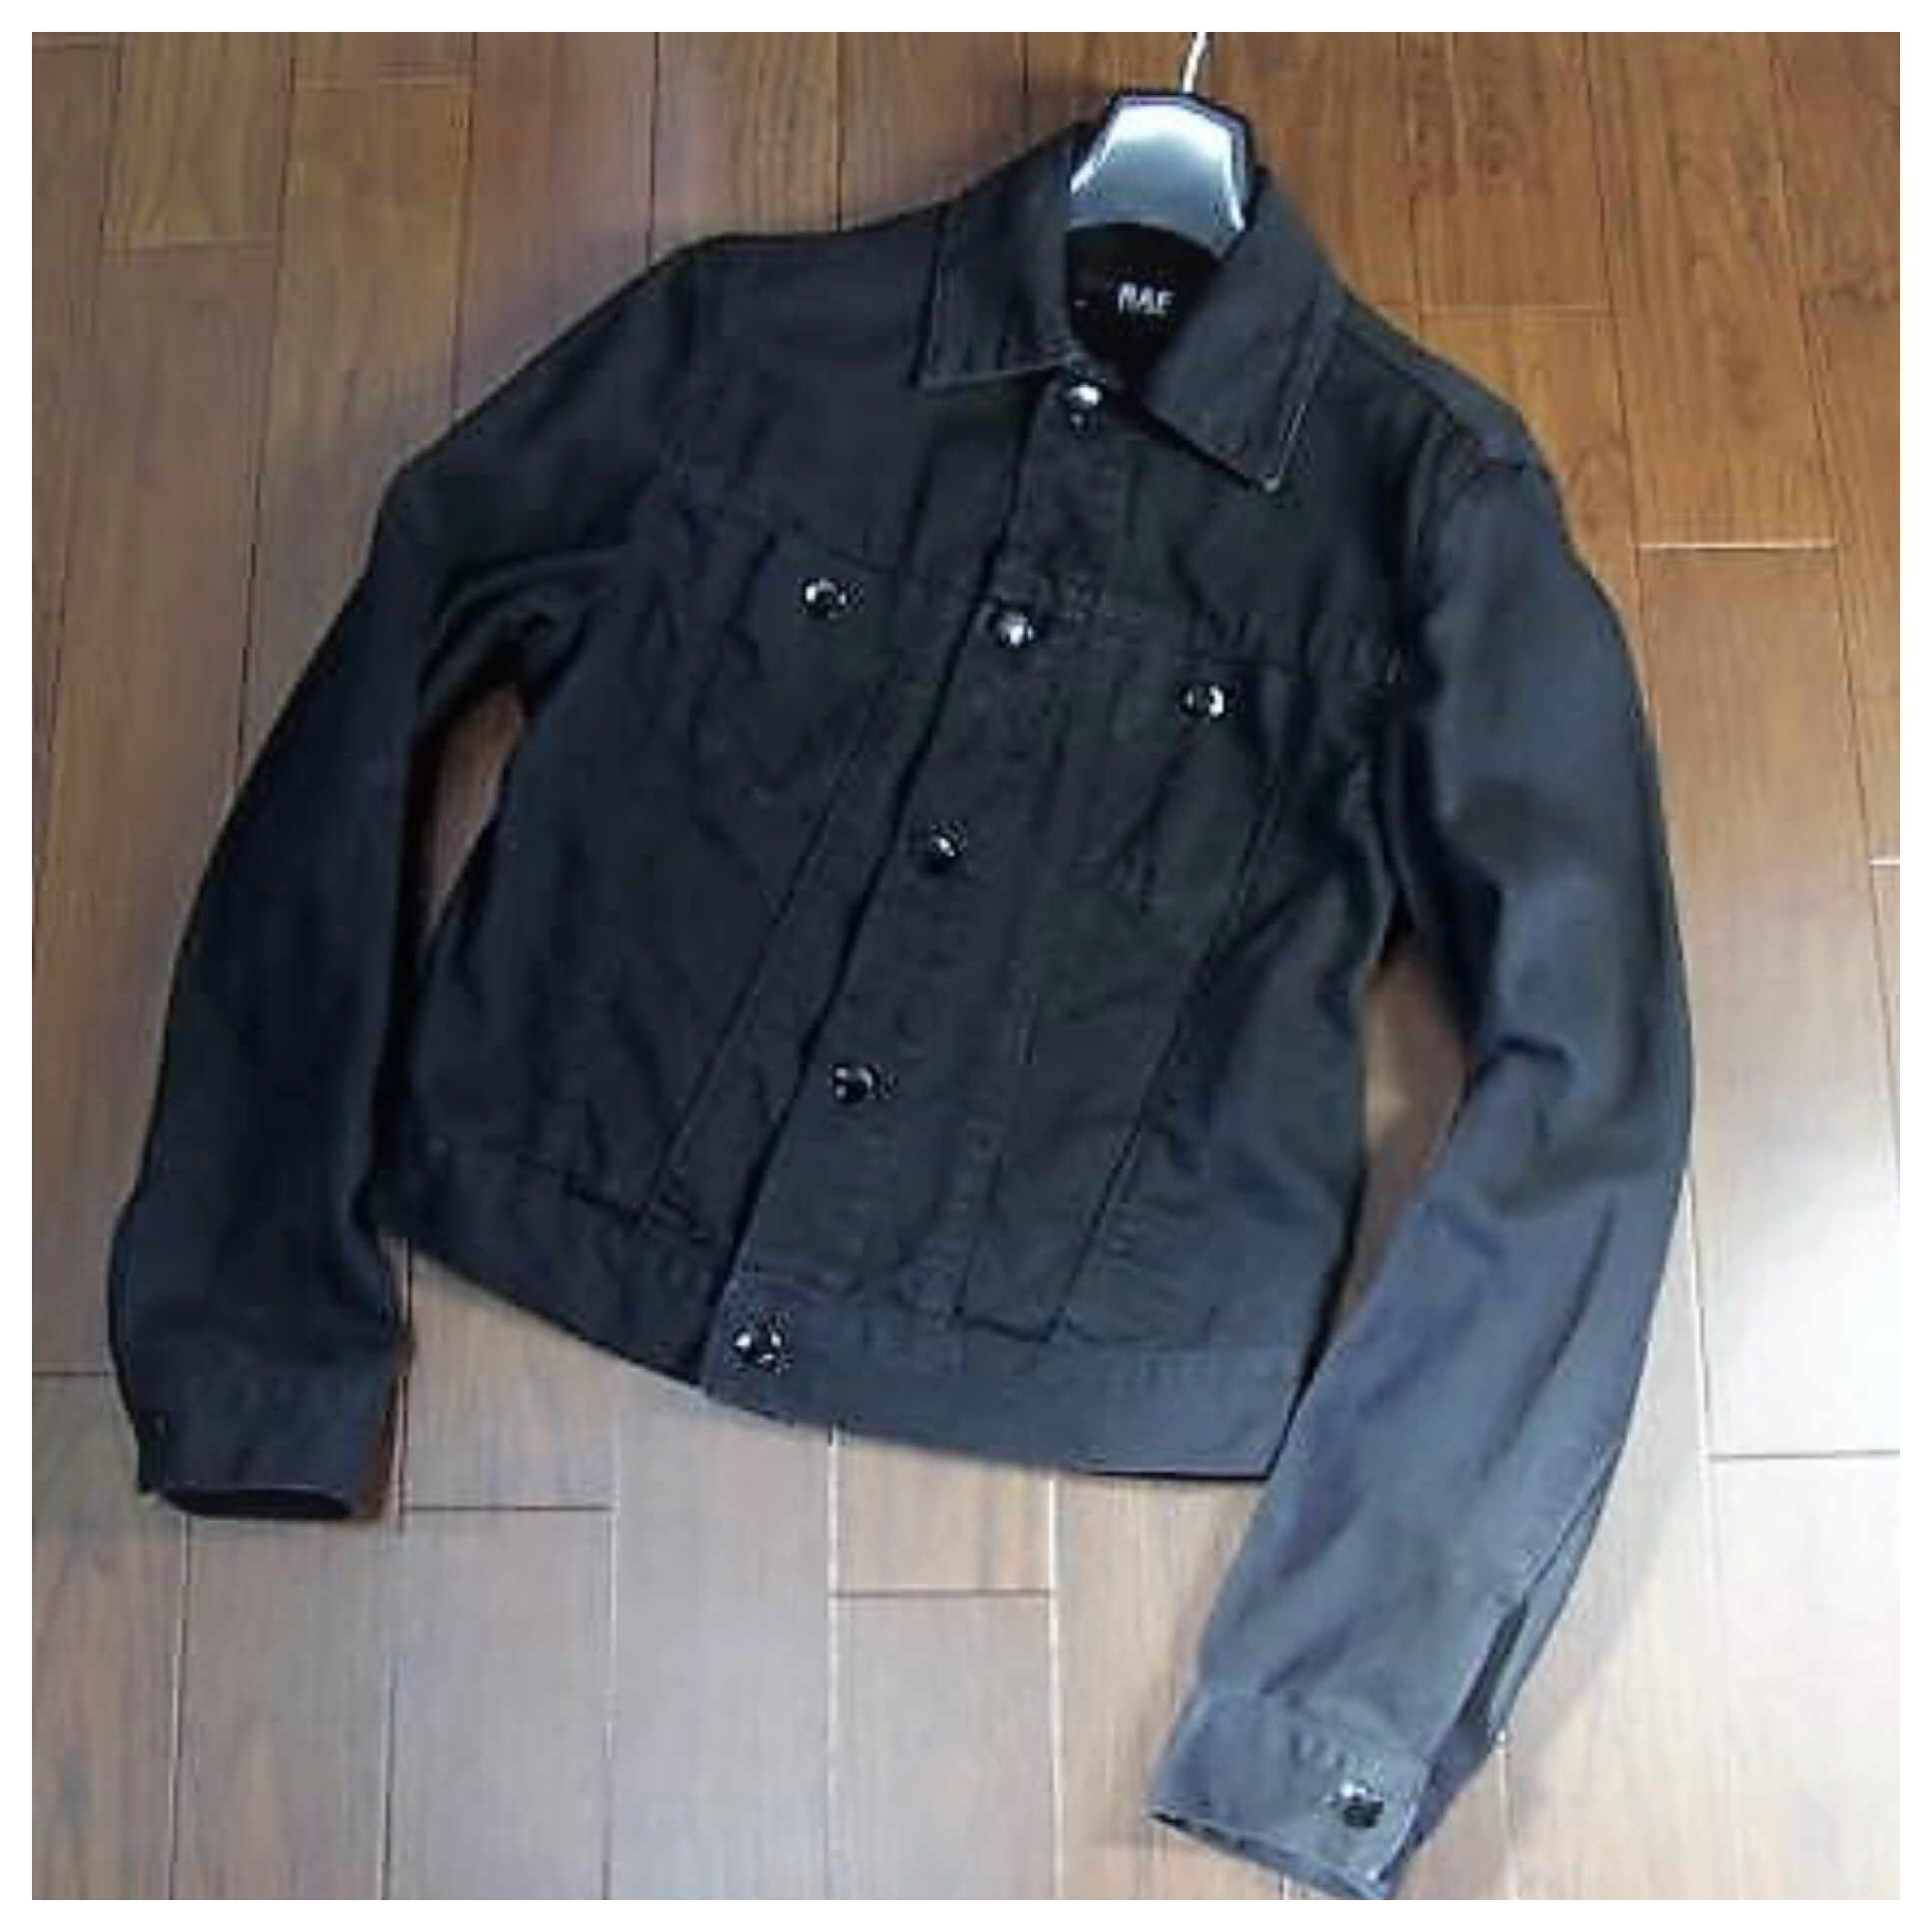 c6ea353b784 Raf Simons ×. Raf by Raf Simons Black Denim Jacket